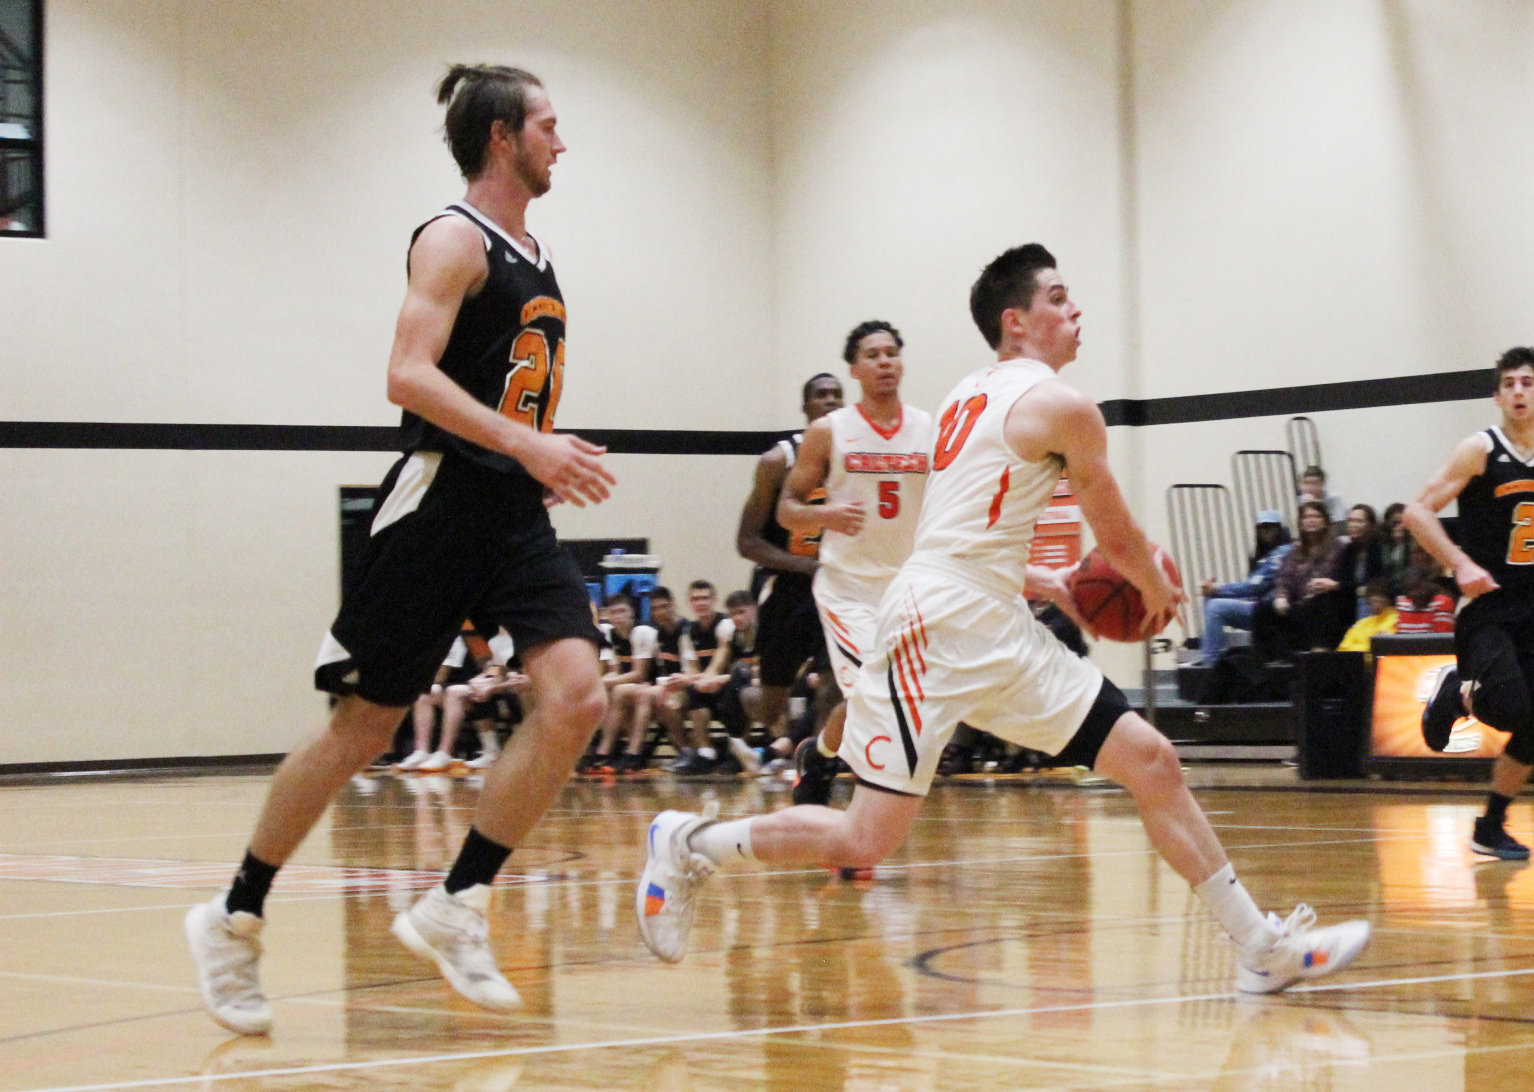 Men's Basketball Tests Oxy in Annual 110 Rivalry